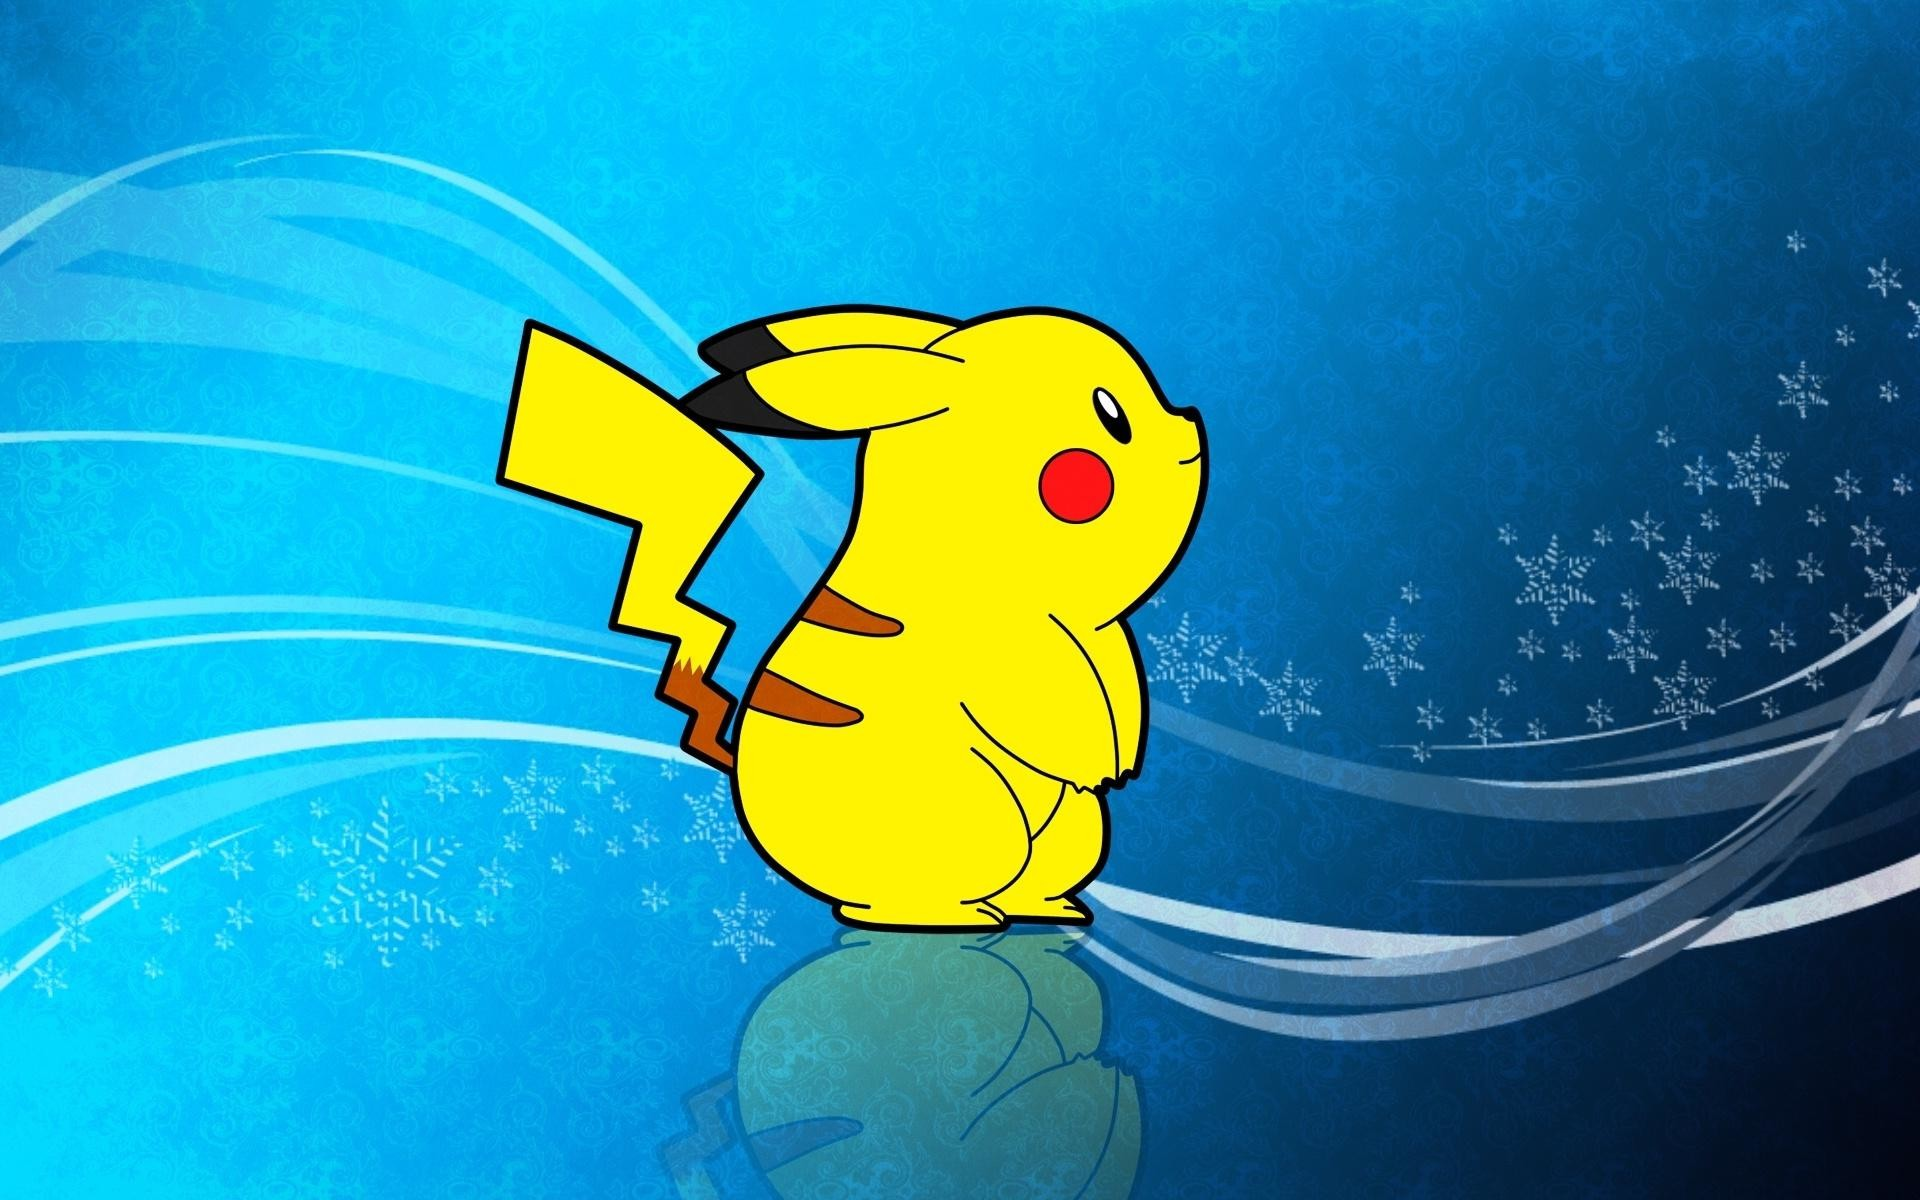 192 Pikachu Wallpapers For Computer